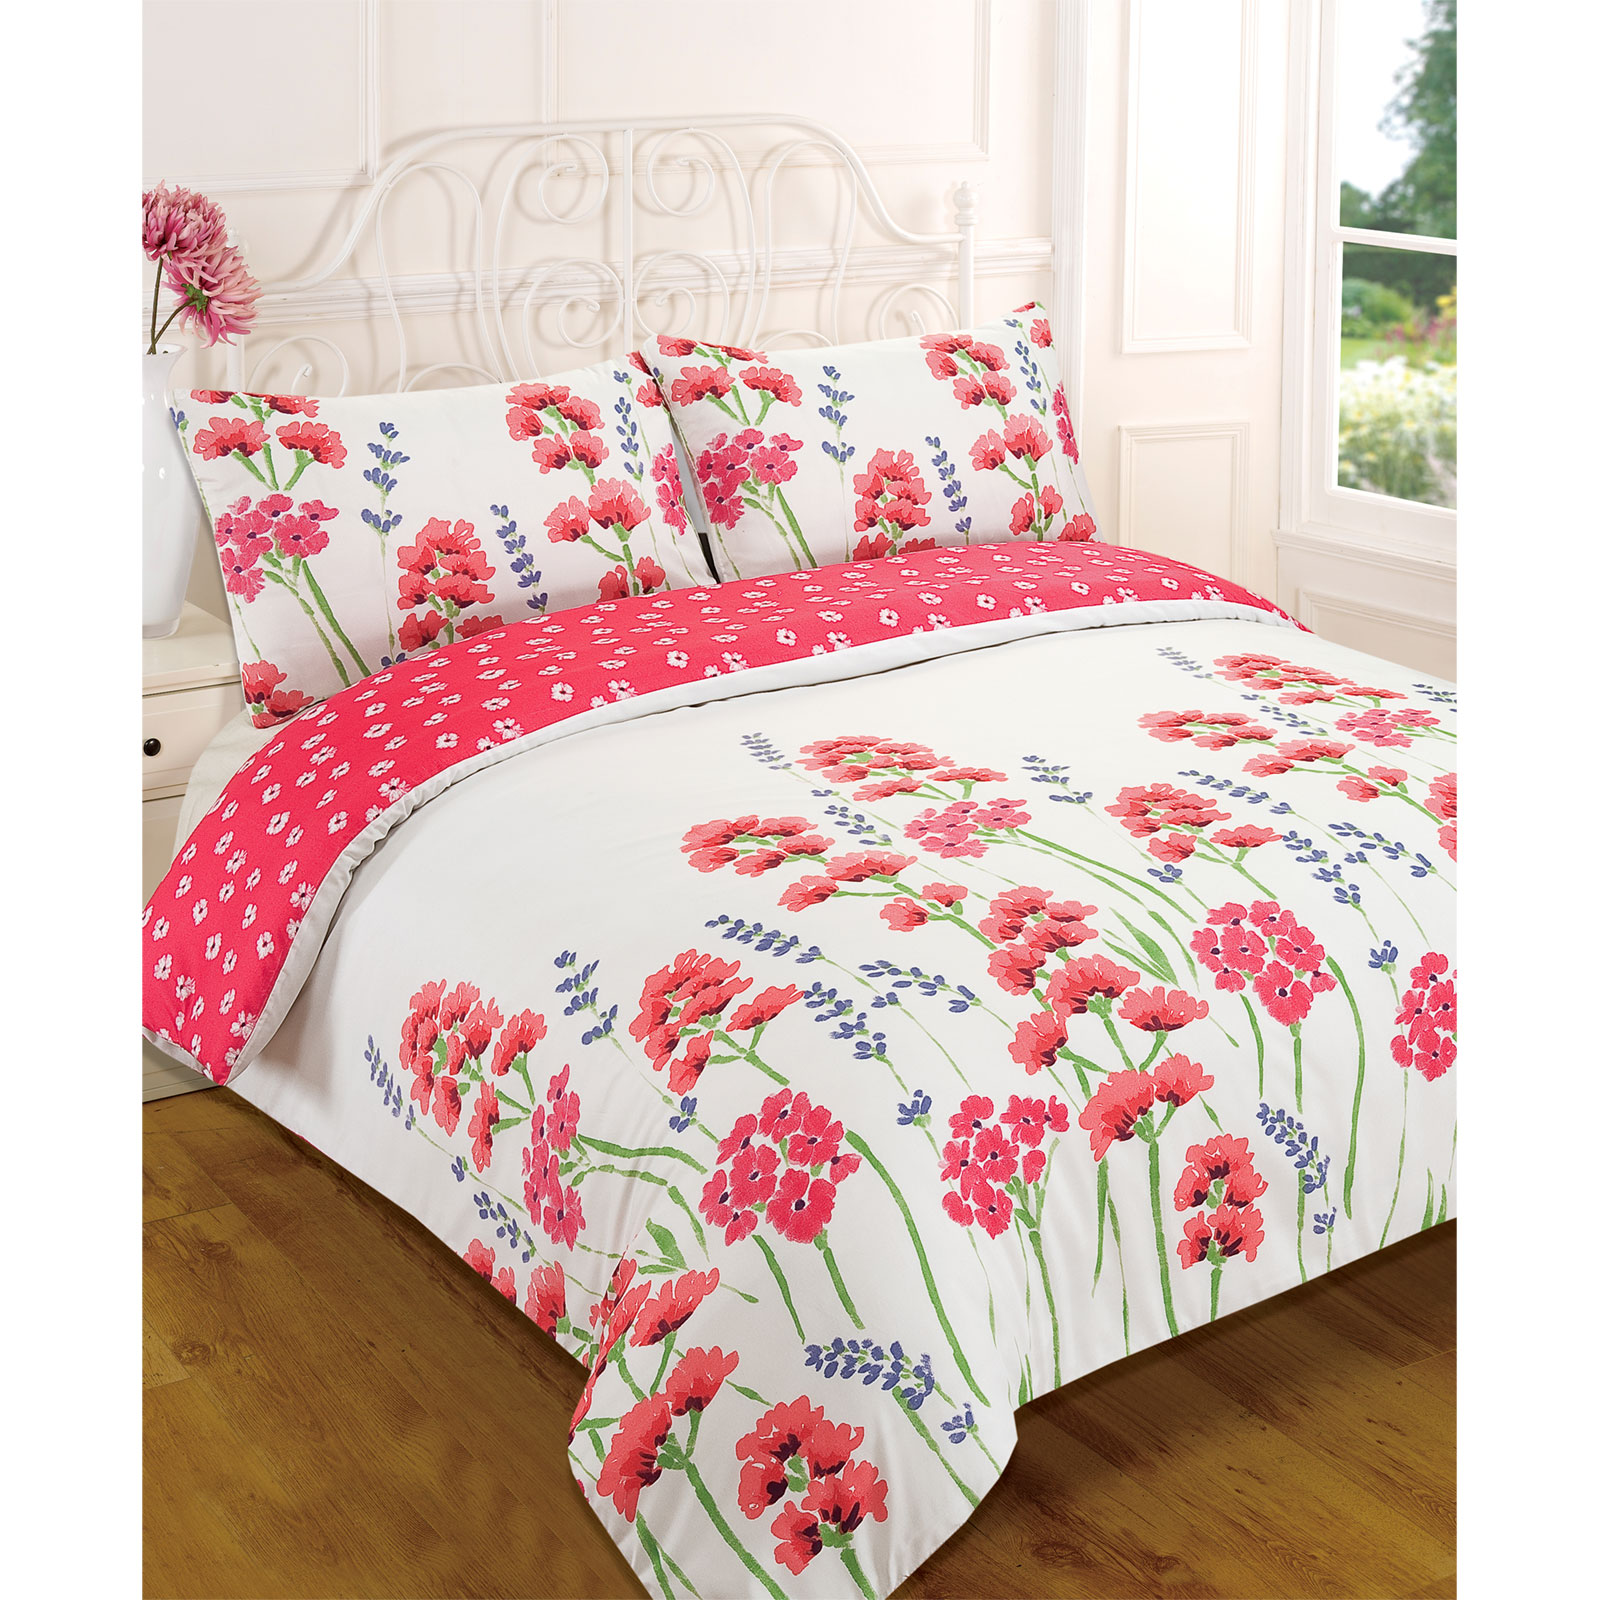 Wild flower meadow duvet cover reversible floral bedding for Wild bedding